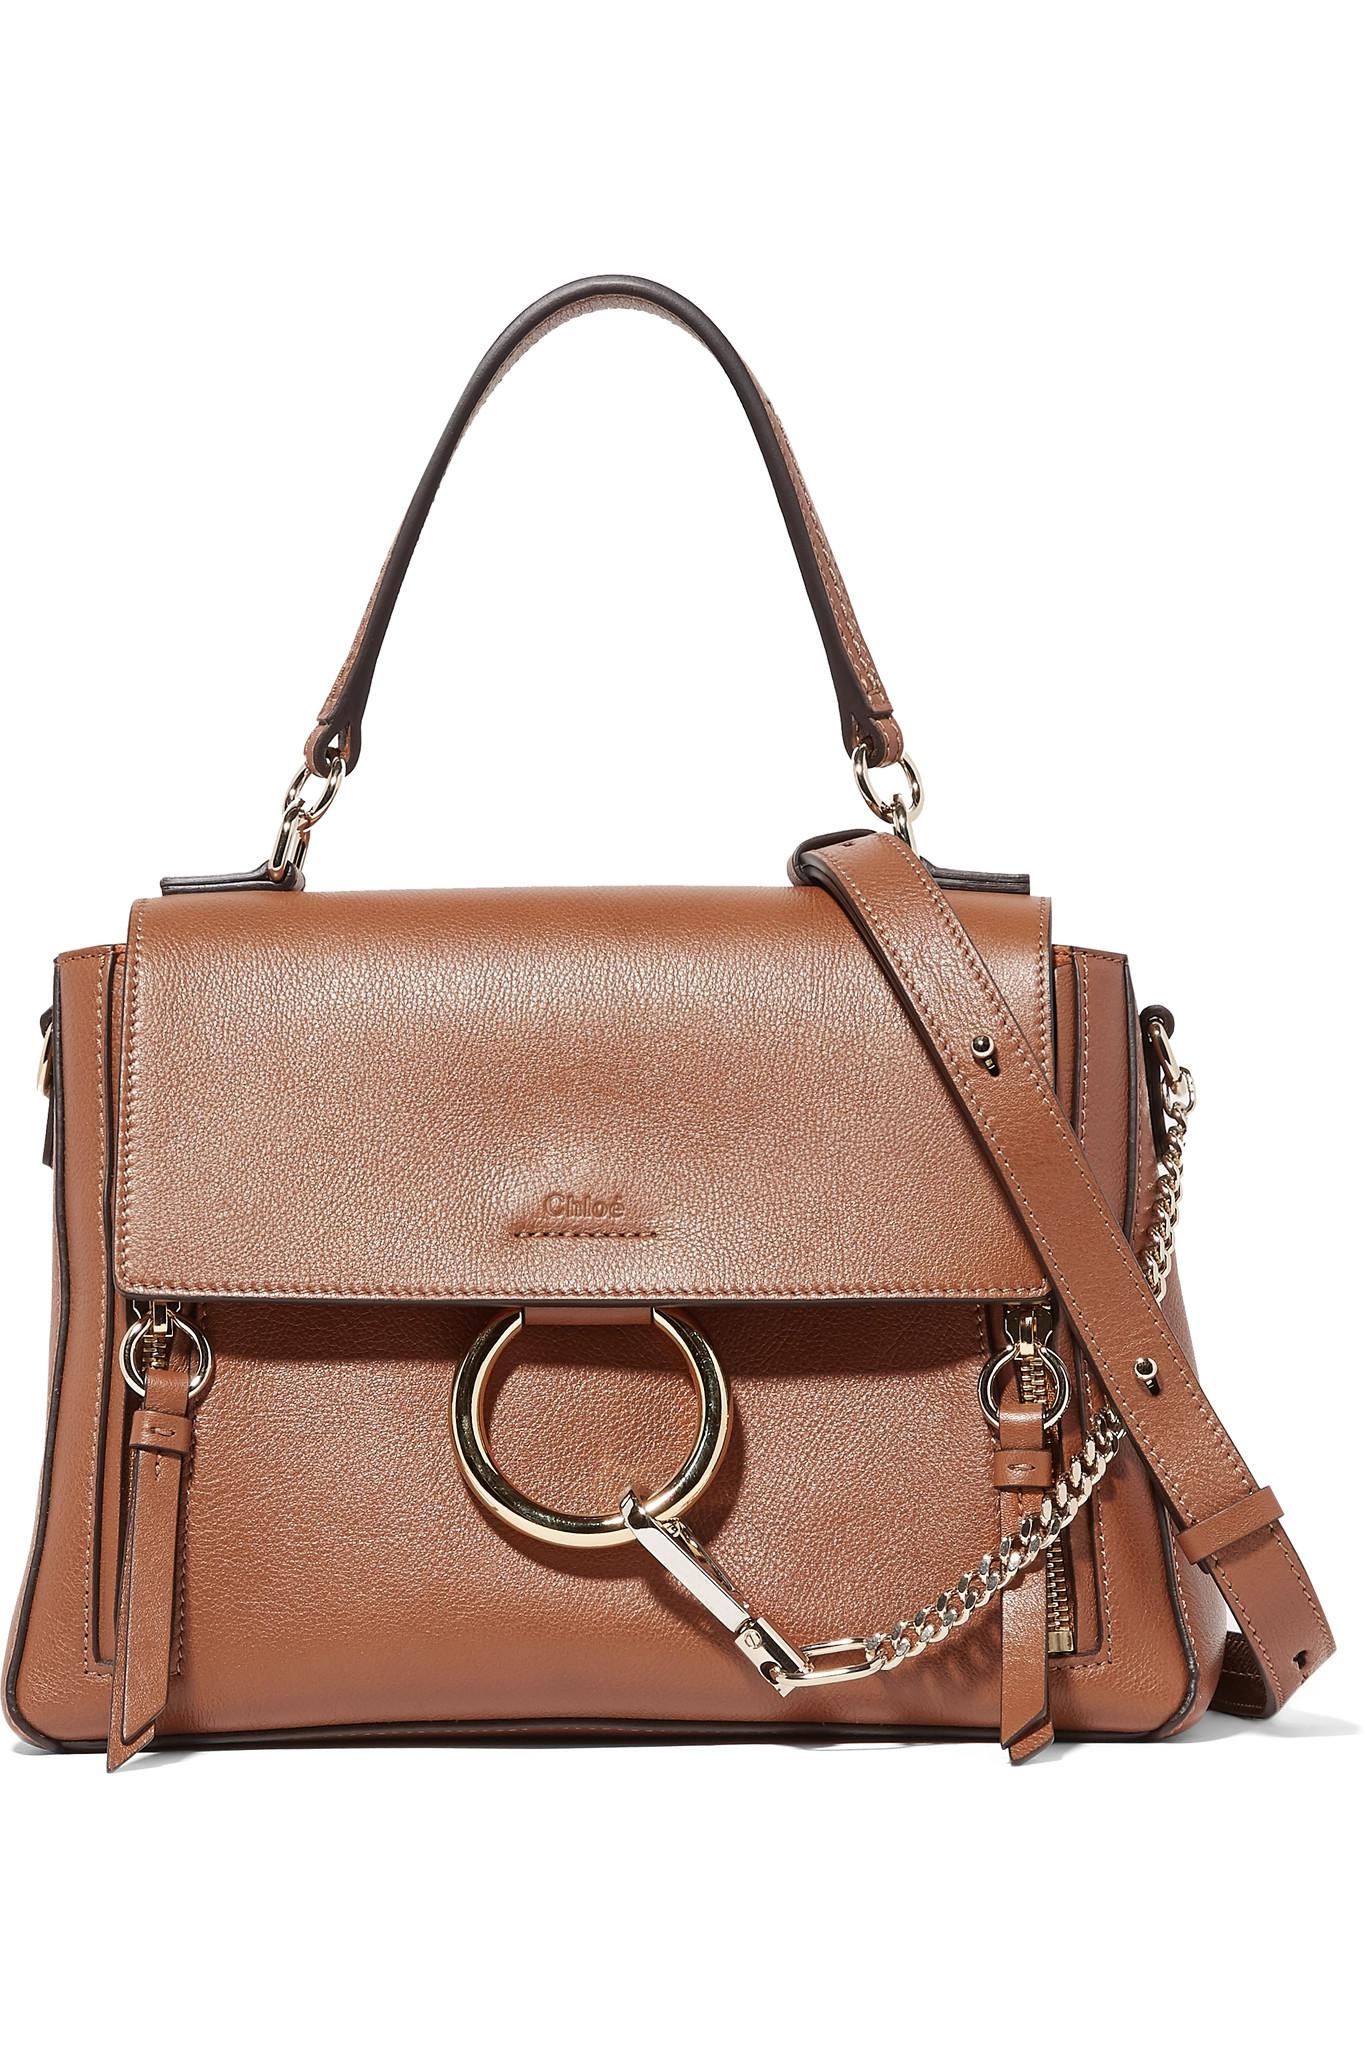 Lyst - Chloé Faye Day Large Textured-leather Shoulder Bag in Brown ... 883bdeeb39911